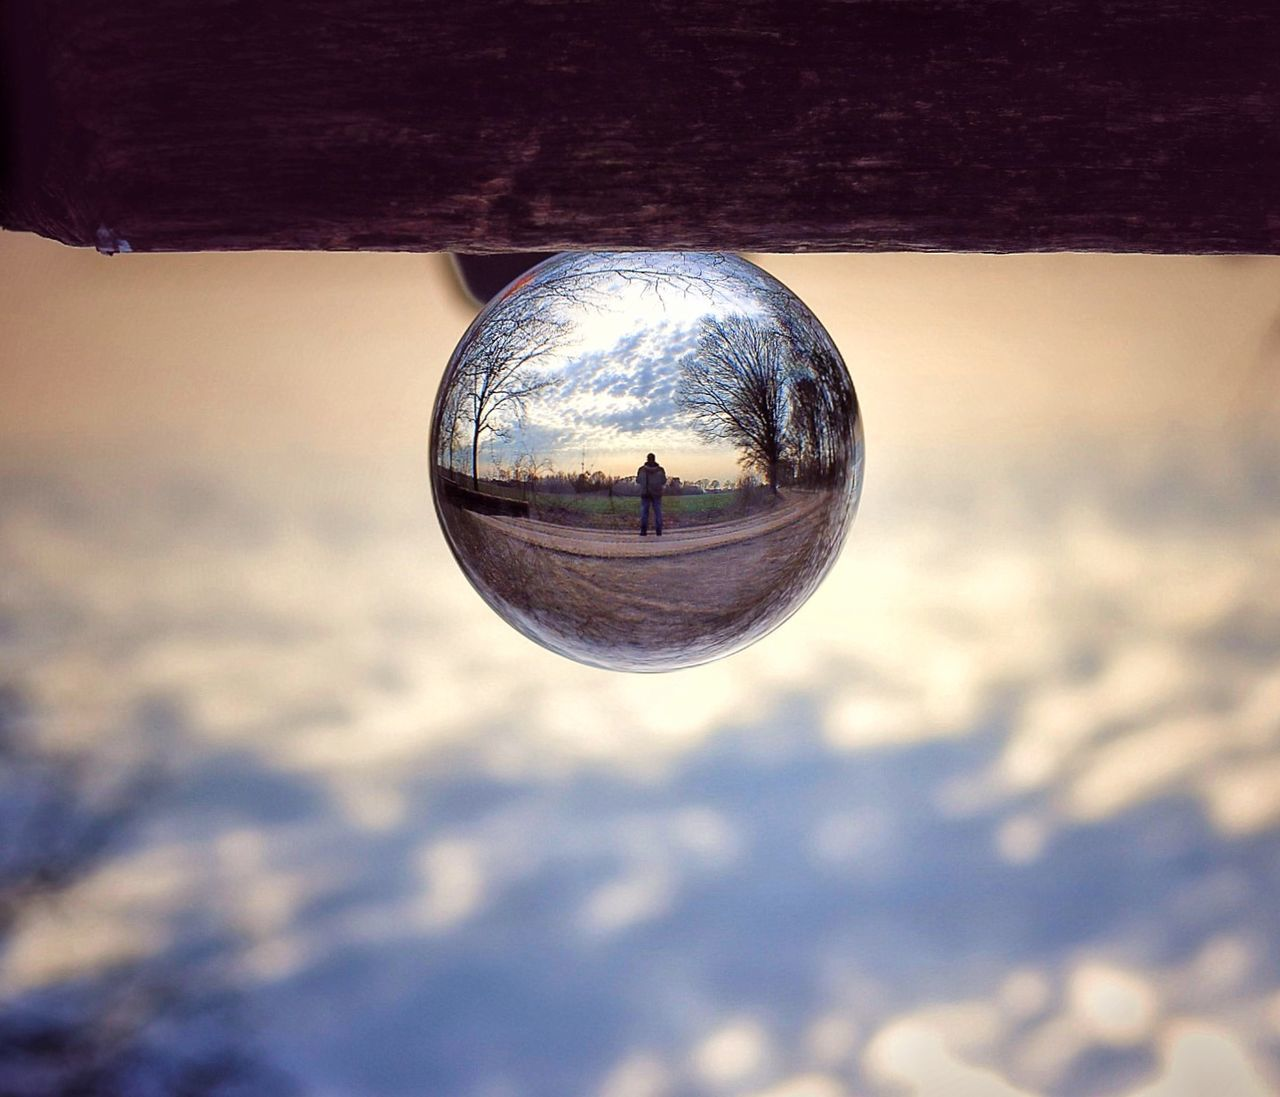 reflection, sky, crystal ball, outdoors, close-up, no people, day, landscape, nature, tree